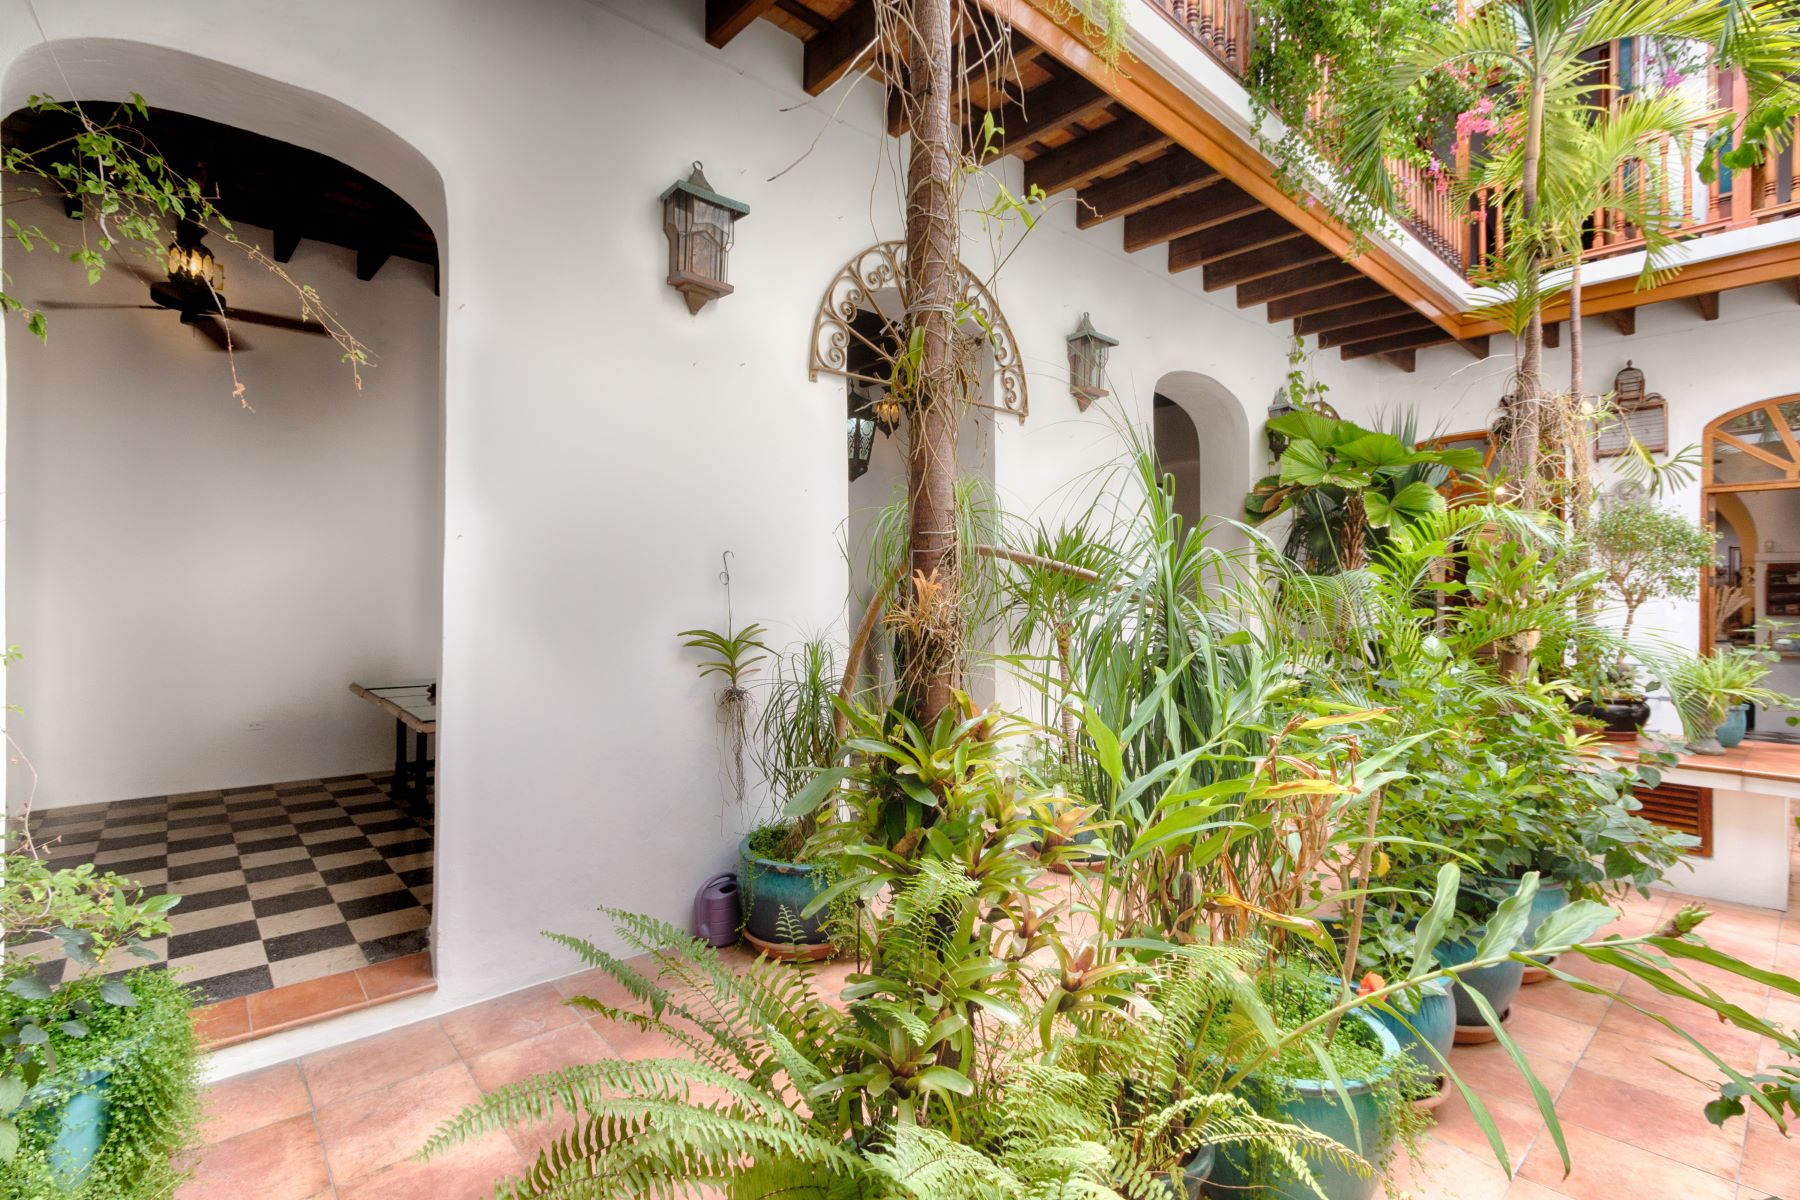 Additional photo for property listing at Impressive Colonial Gem 257 Calle Cruz Old San Juan, 00901 Puerto Rico